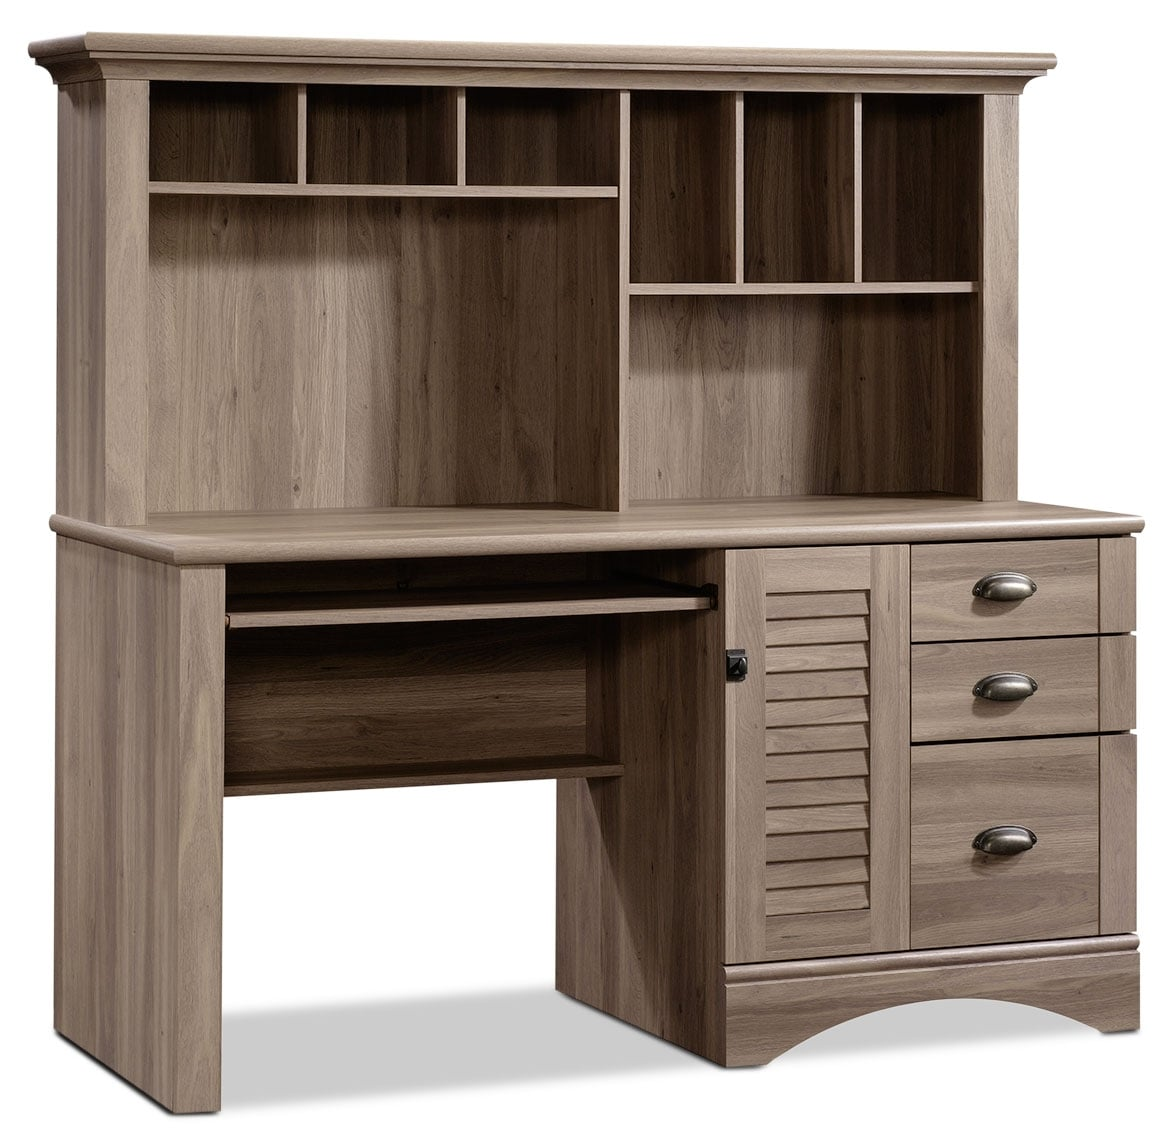 Harbor view desk with hutch salt oak the brick for Furniture oak harbor